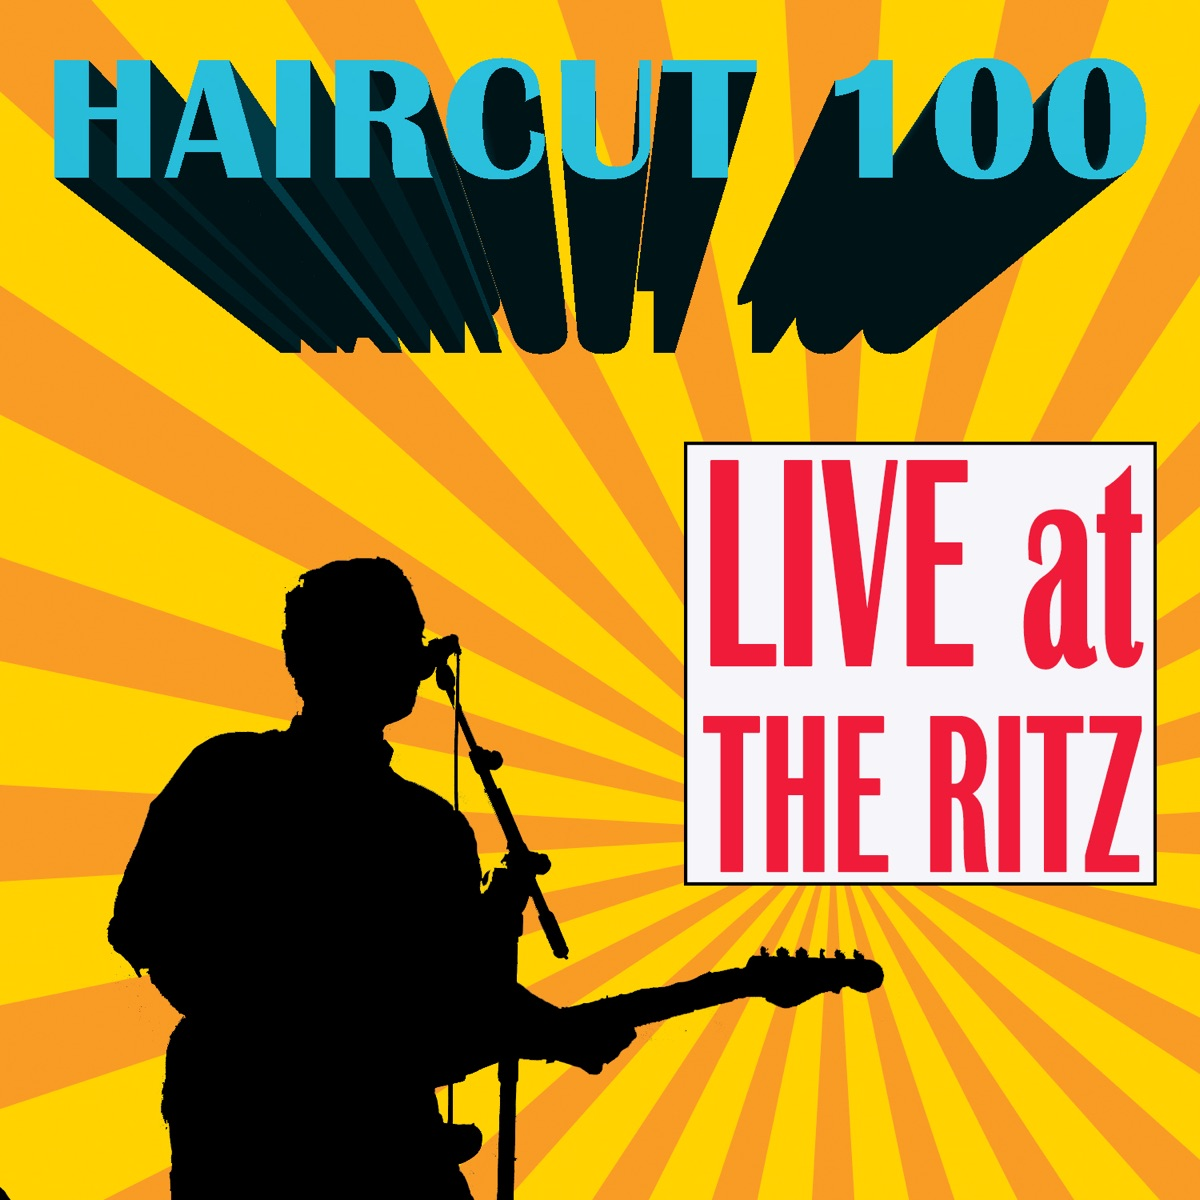 Live At The Ritz Album Cover By Haircut 100